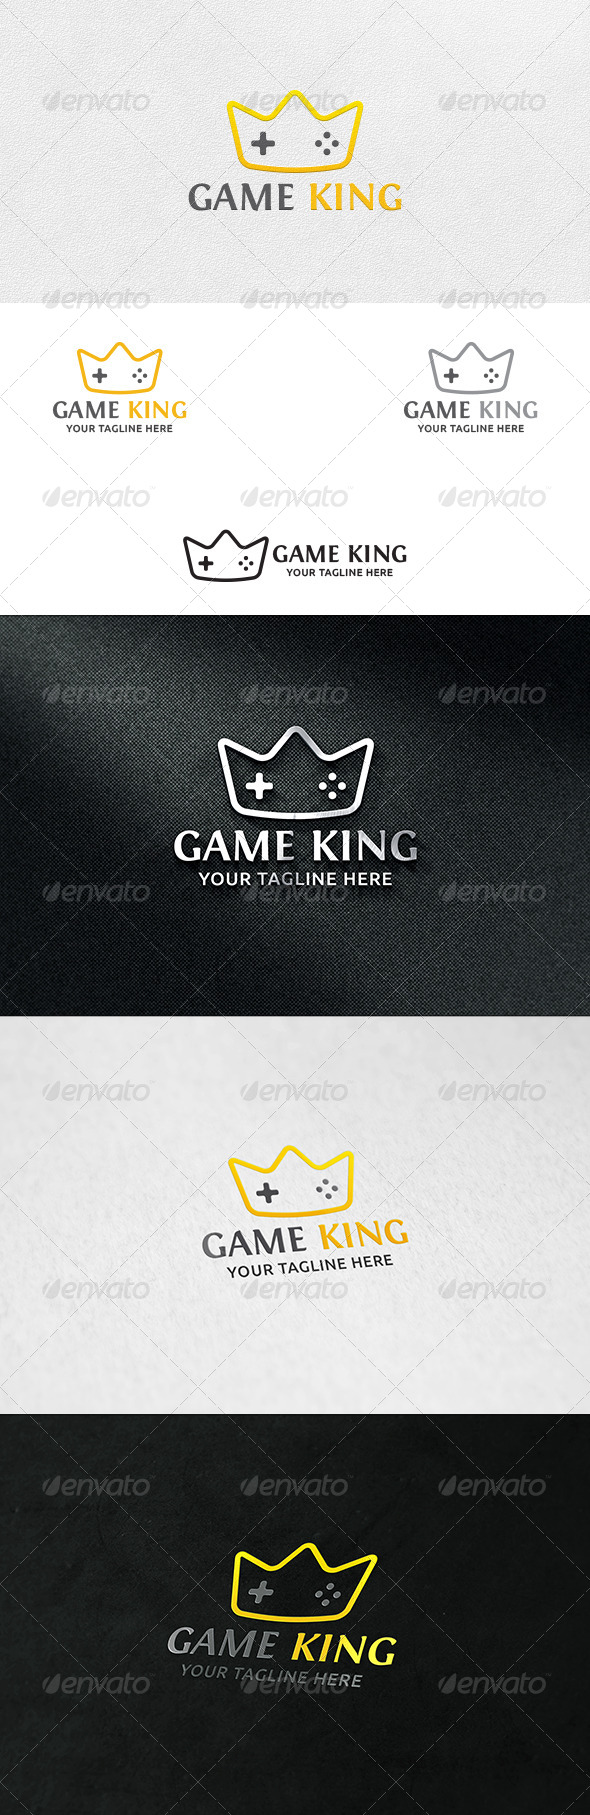 GraphicRiver Game King Logo Template 6764693